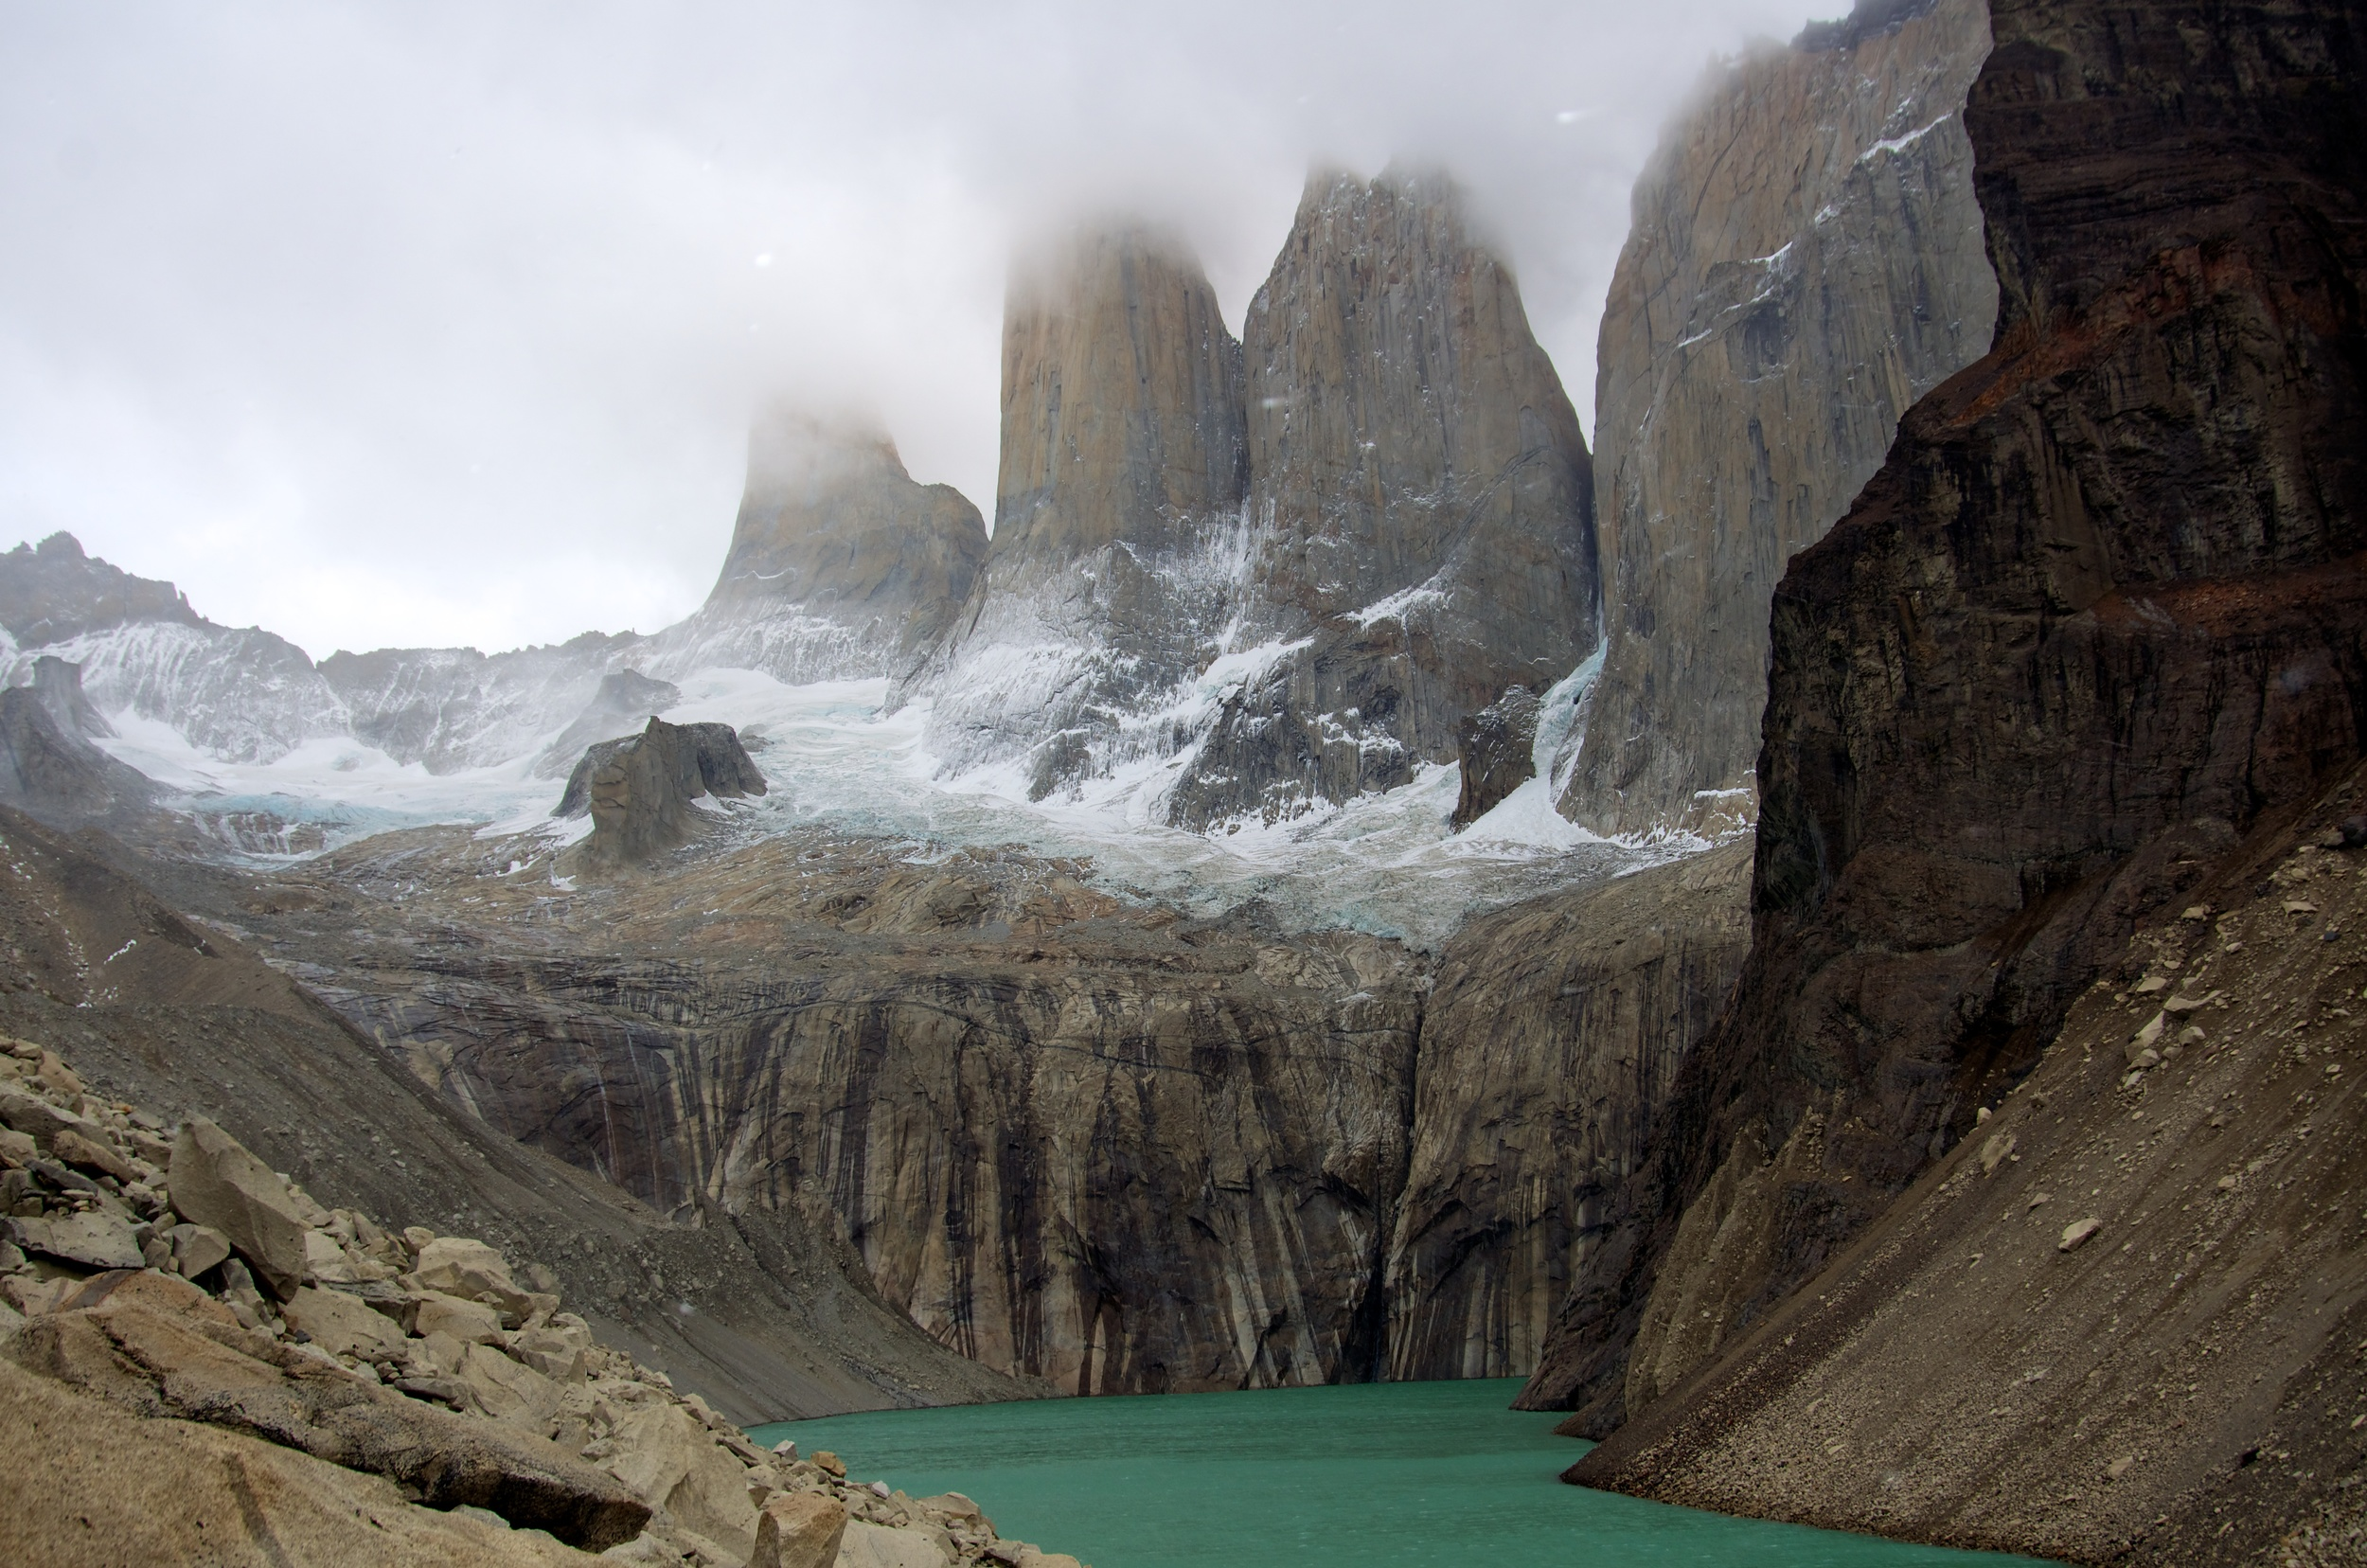 The Towers, Torres del Paine, Patagonia, Chile, 3 Apr 2012